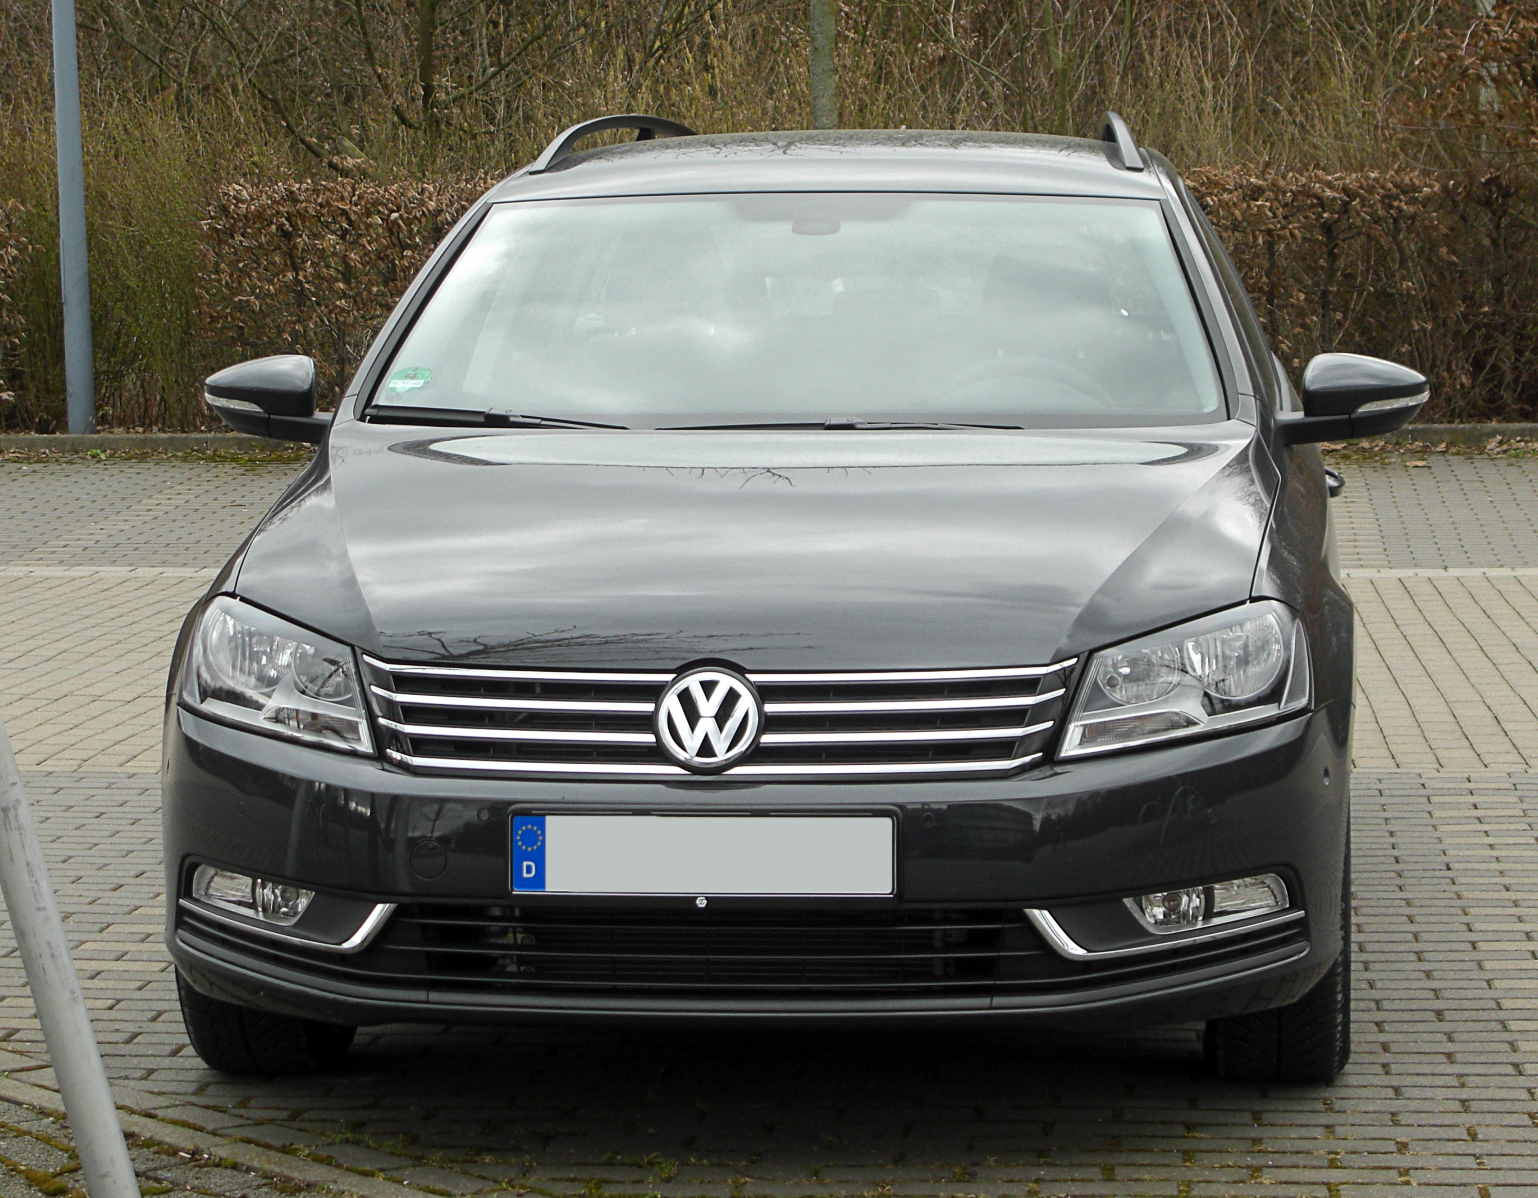 vw passat variant bluemotion technical details history photos on better parts ltd. Black Bedroom Furniture Sets. Home Design Ideas